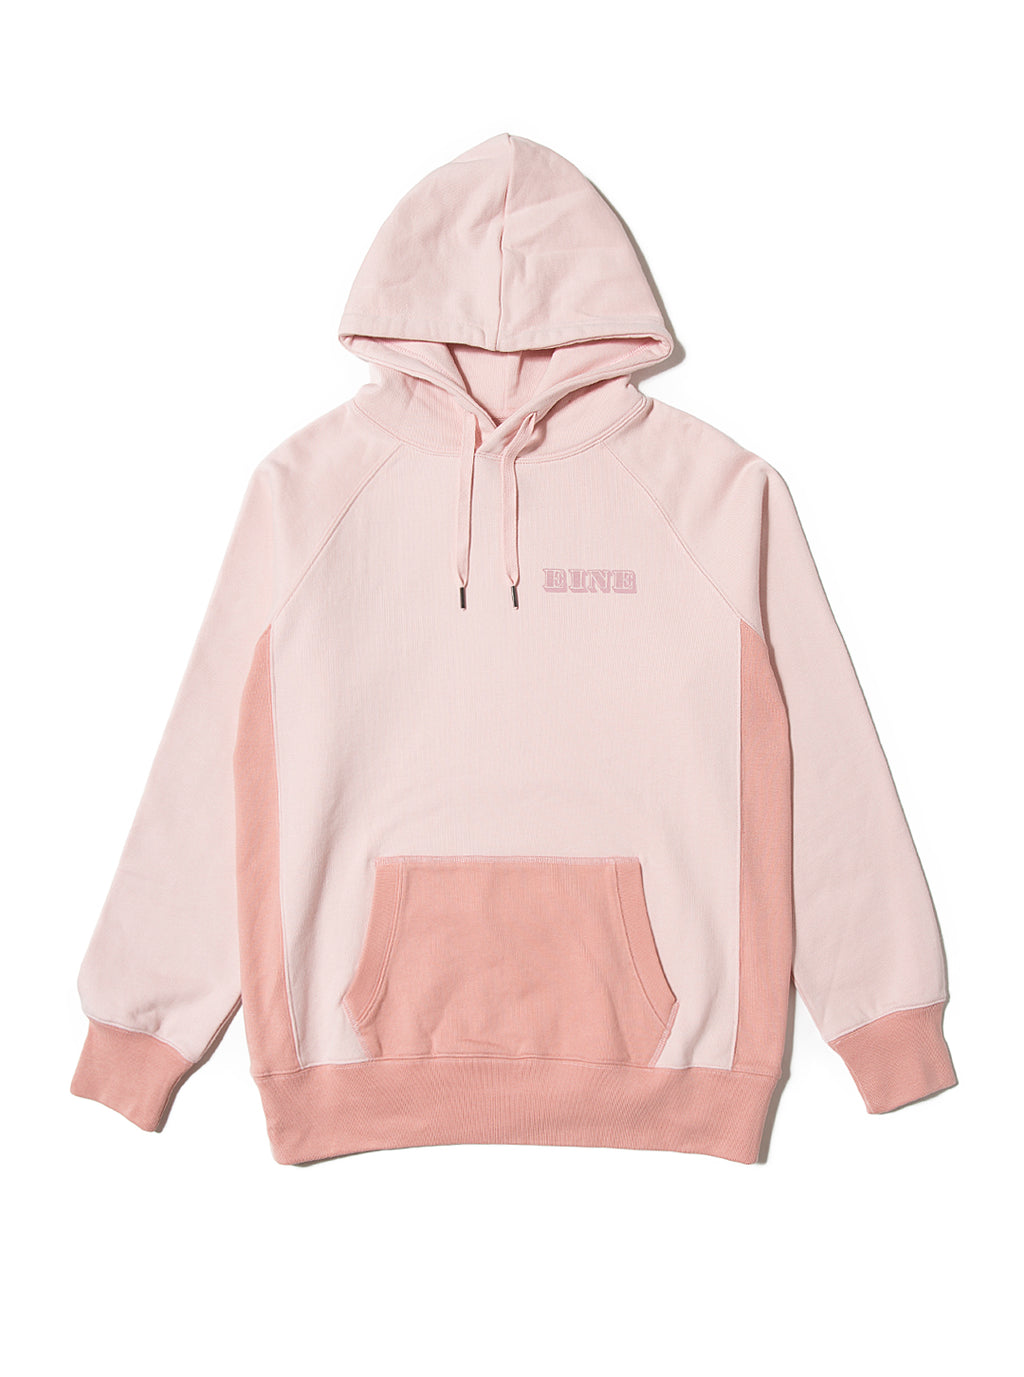 EINE Contrast Hooded Sweat - Pink Sample